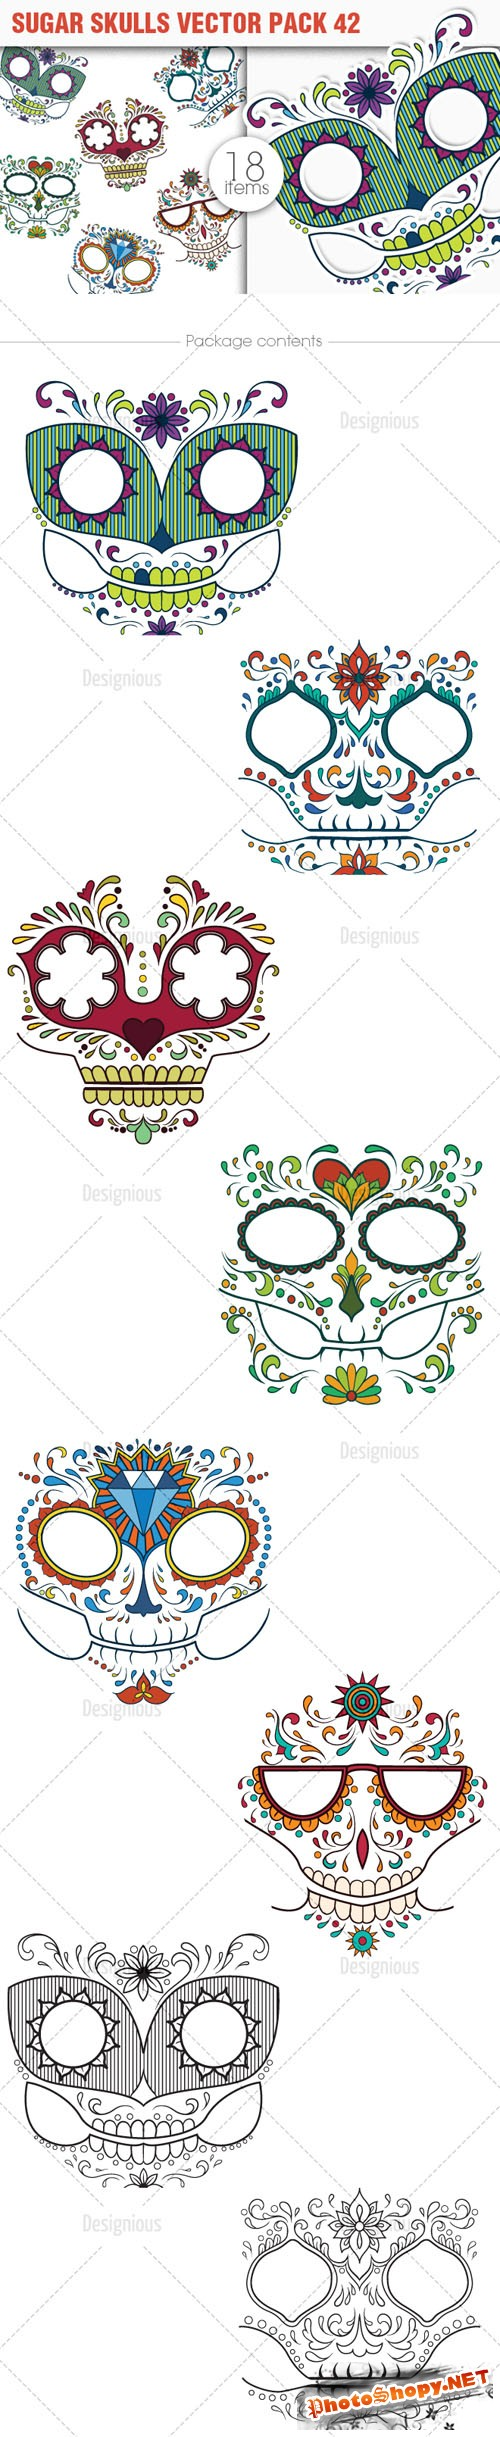 Sugar Skulls Vector Pack 42